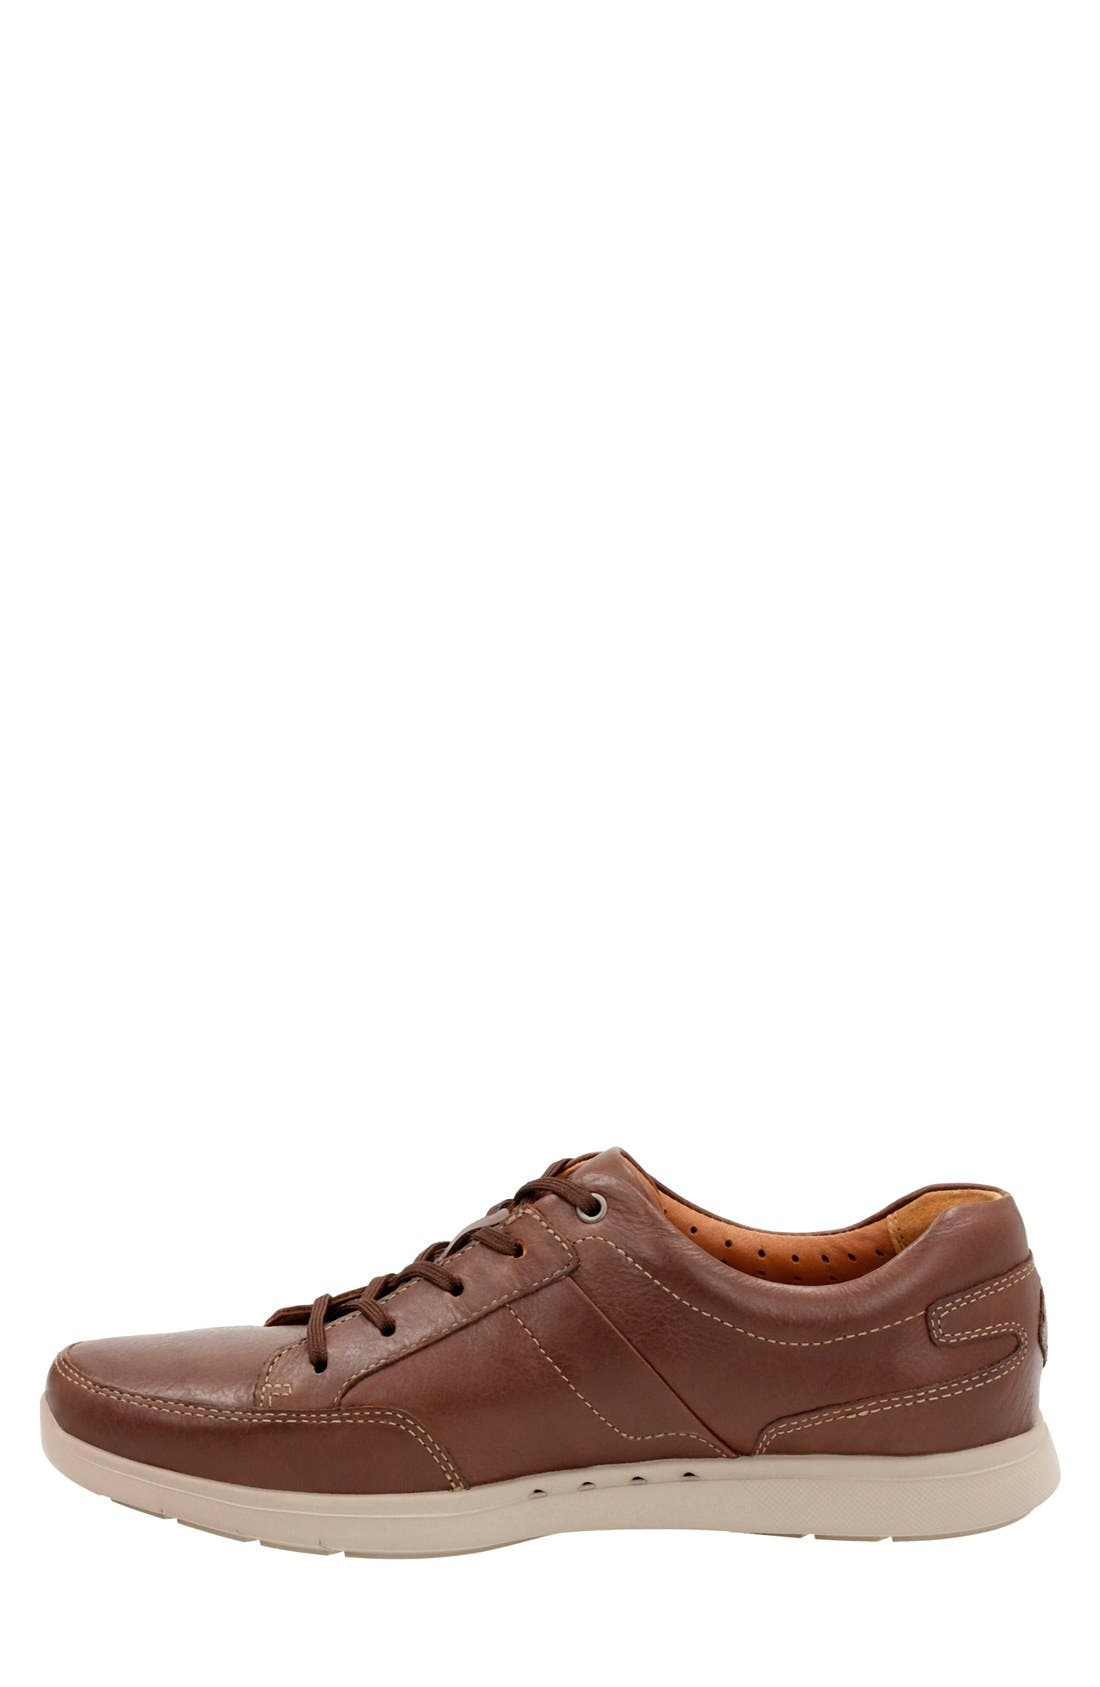 'Unstructured - Lomac' Leather Sneaker,                             Alternate thumbnail 2, color,                             Tan